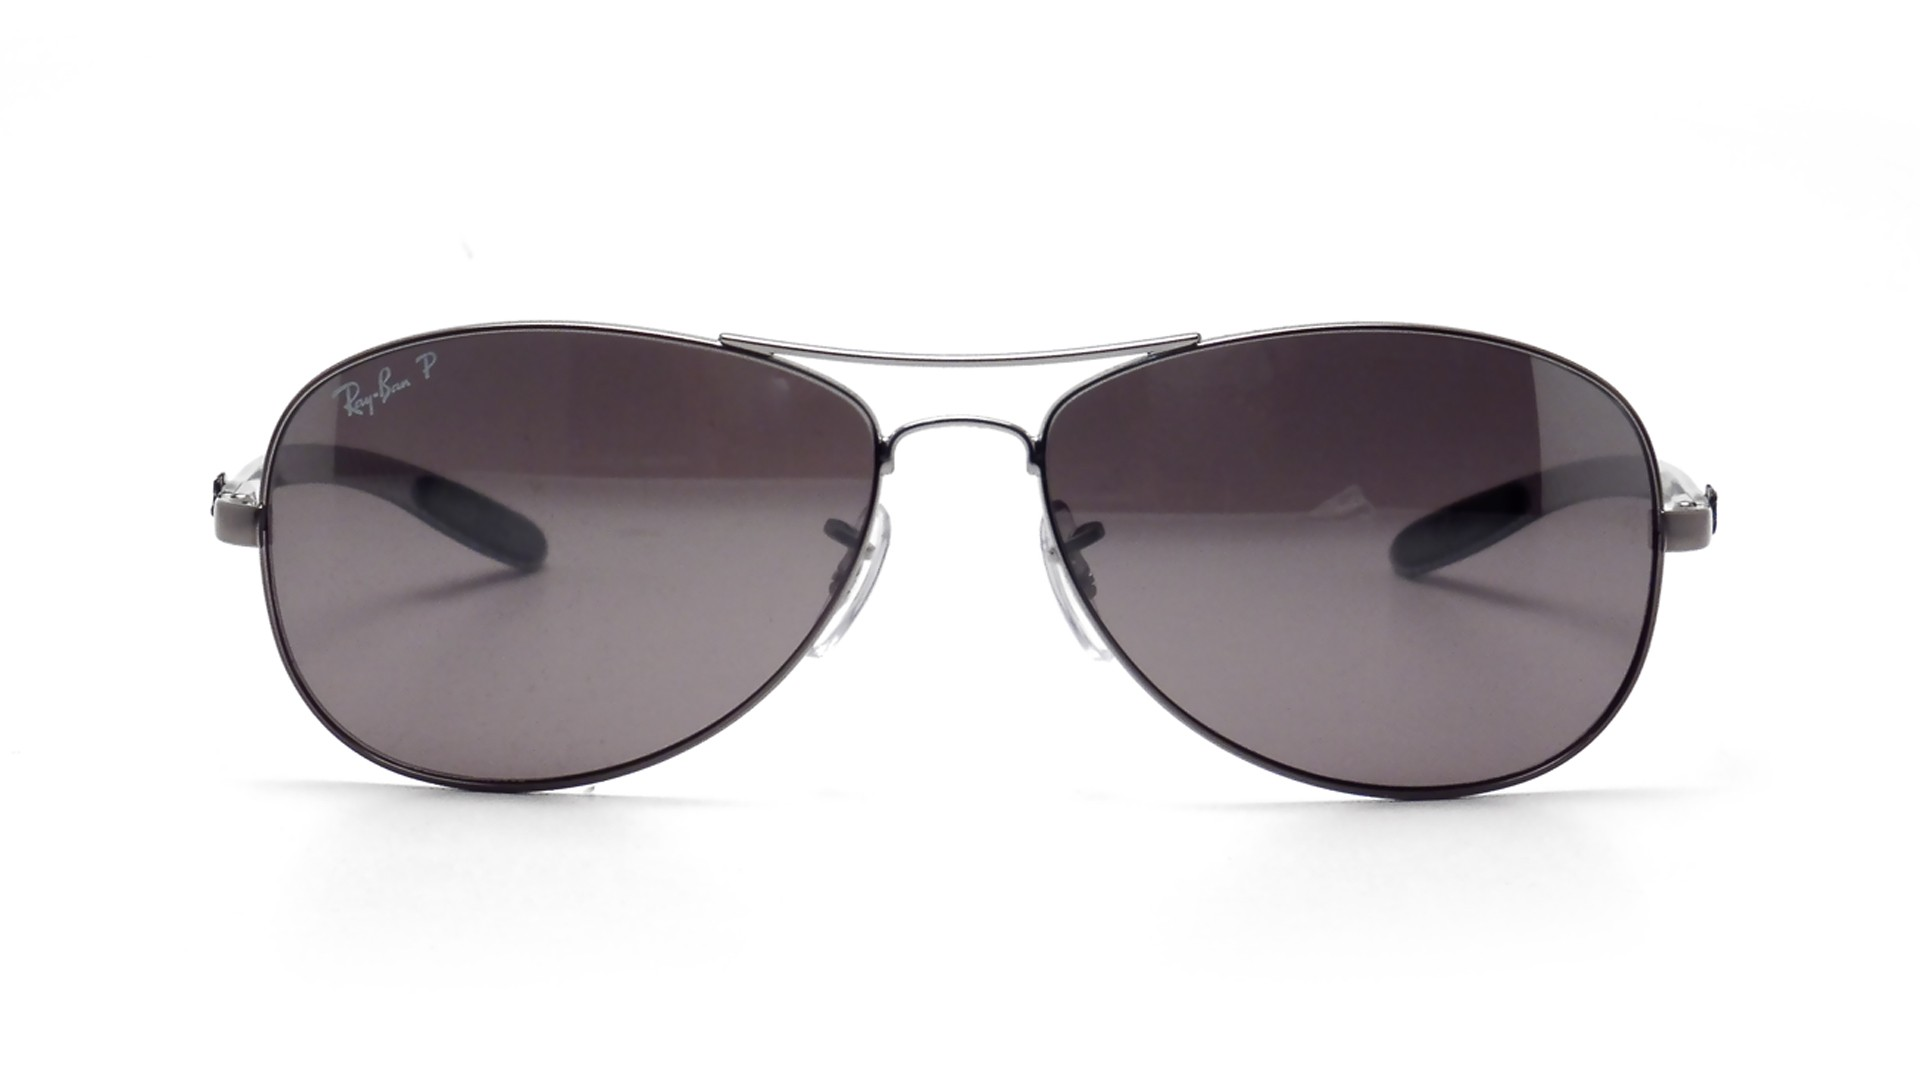 0545cfb440 ... discount code for sunglasses ray ban fibre carbon grey rb8301 004 n8 59  14 large polarized